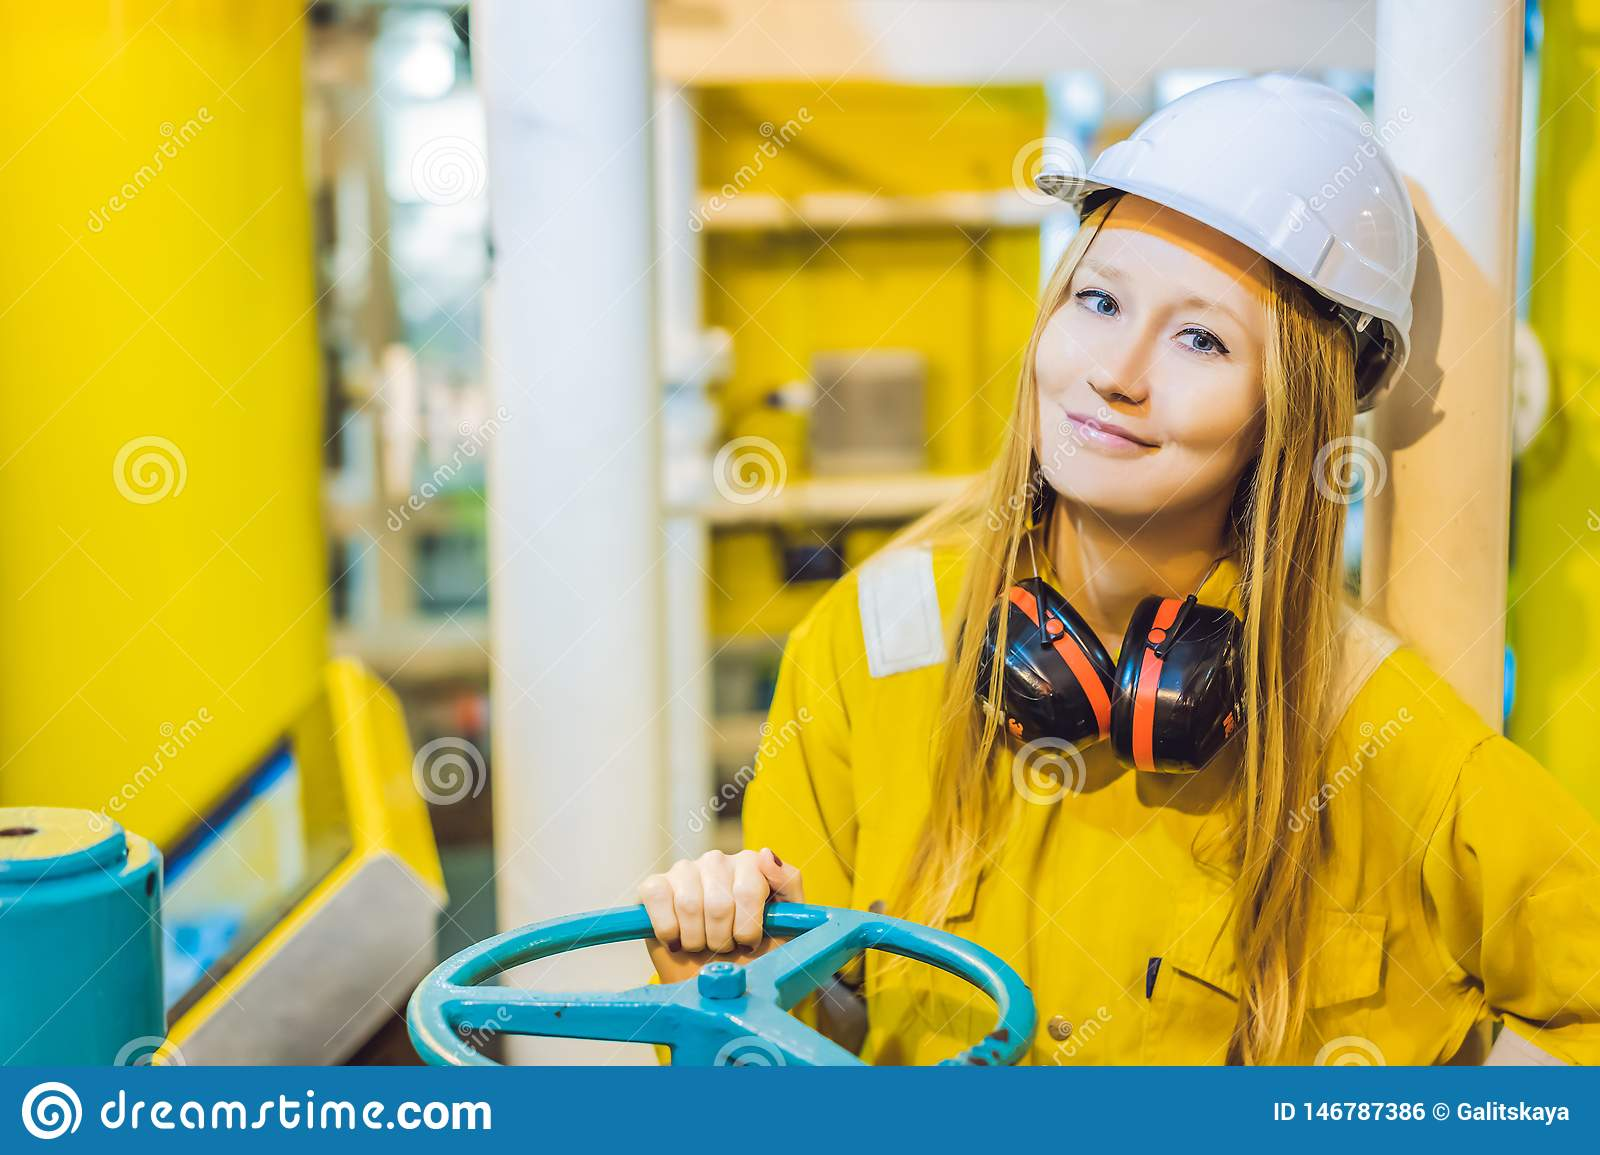 Young woman in a yellow work uniform, glasses and helmet in industrial environment,oil Platform or liquefied gas plant